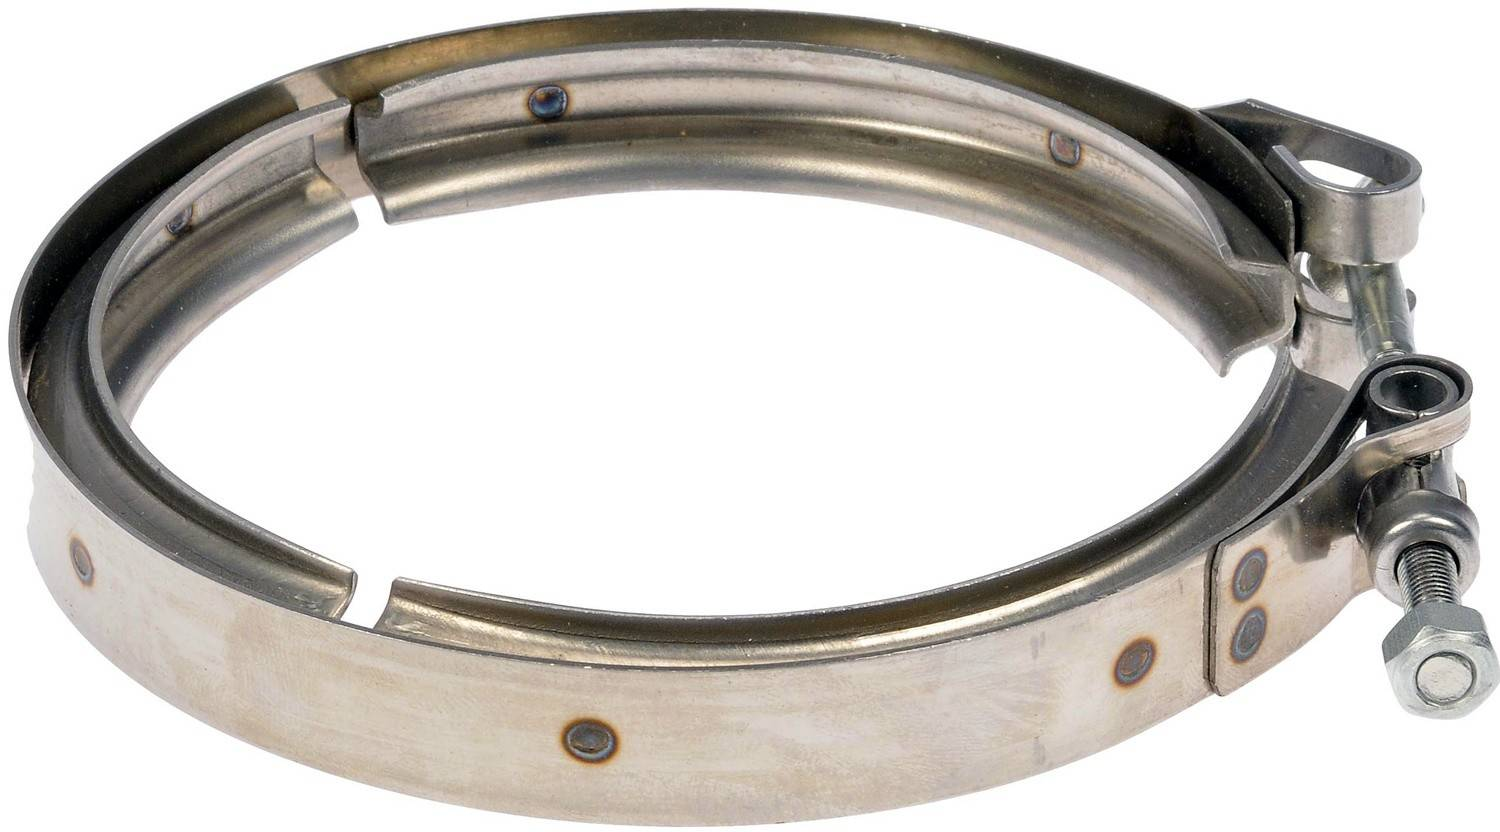 DORMAN OE SOLUTIONS - Exhaust Clamp - DRE 904-354